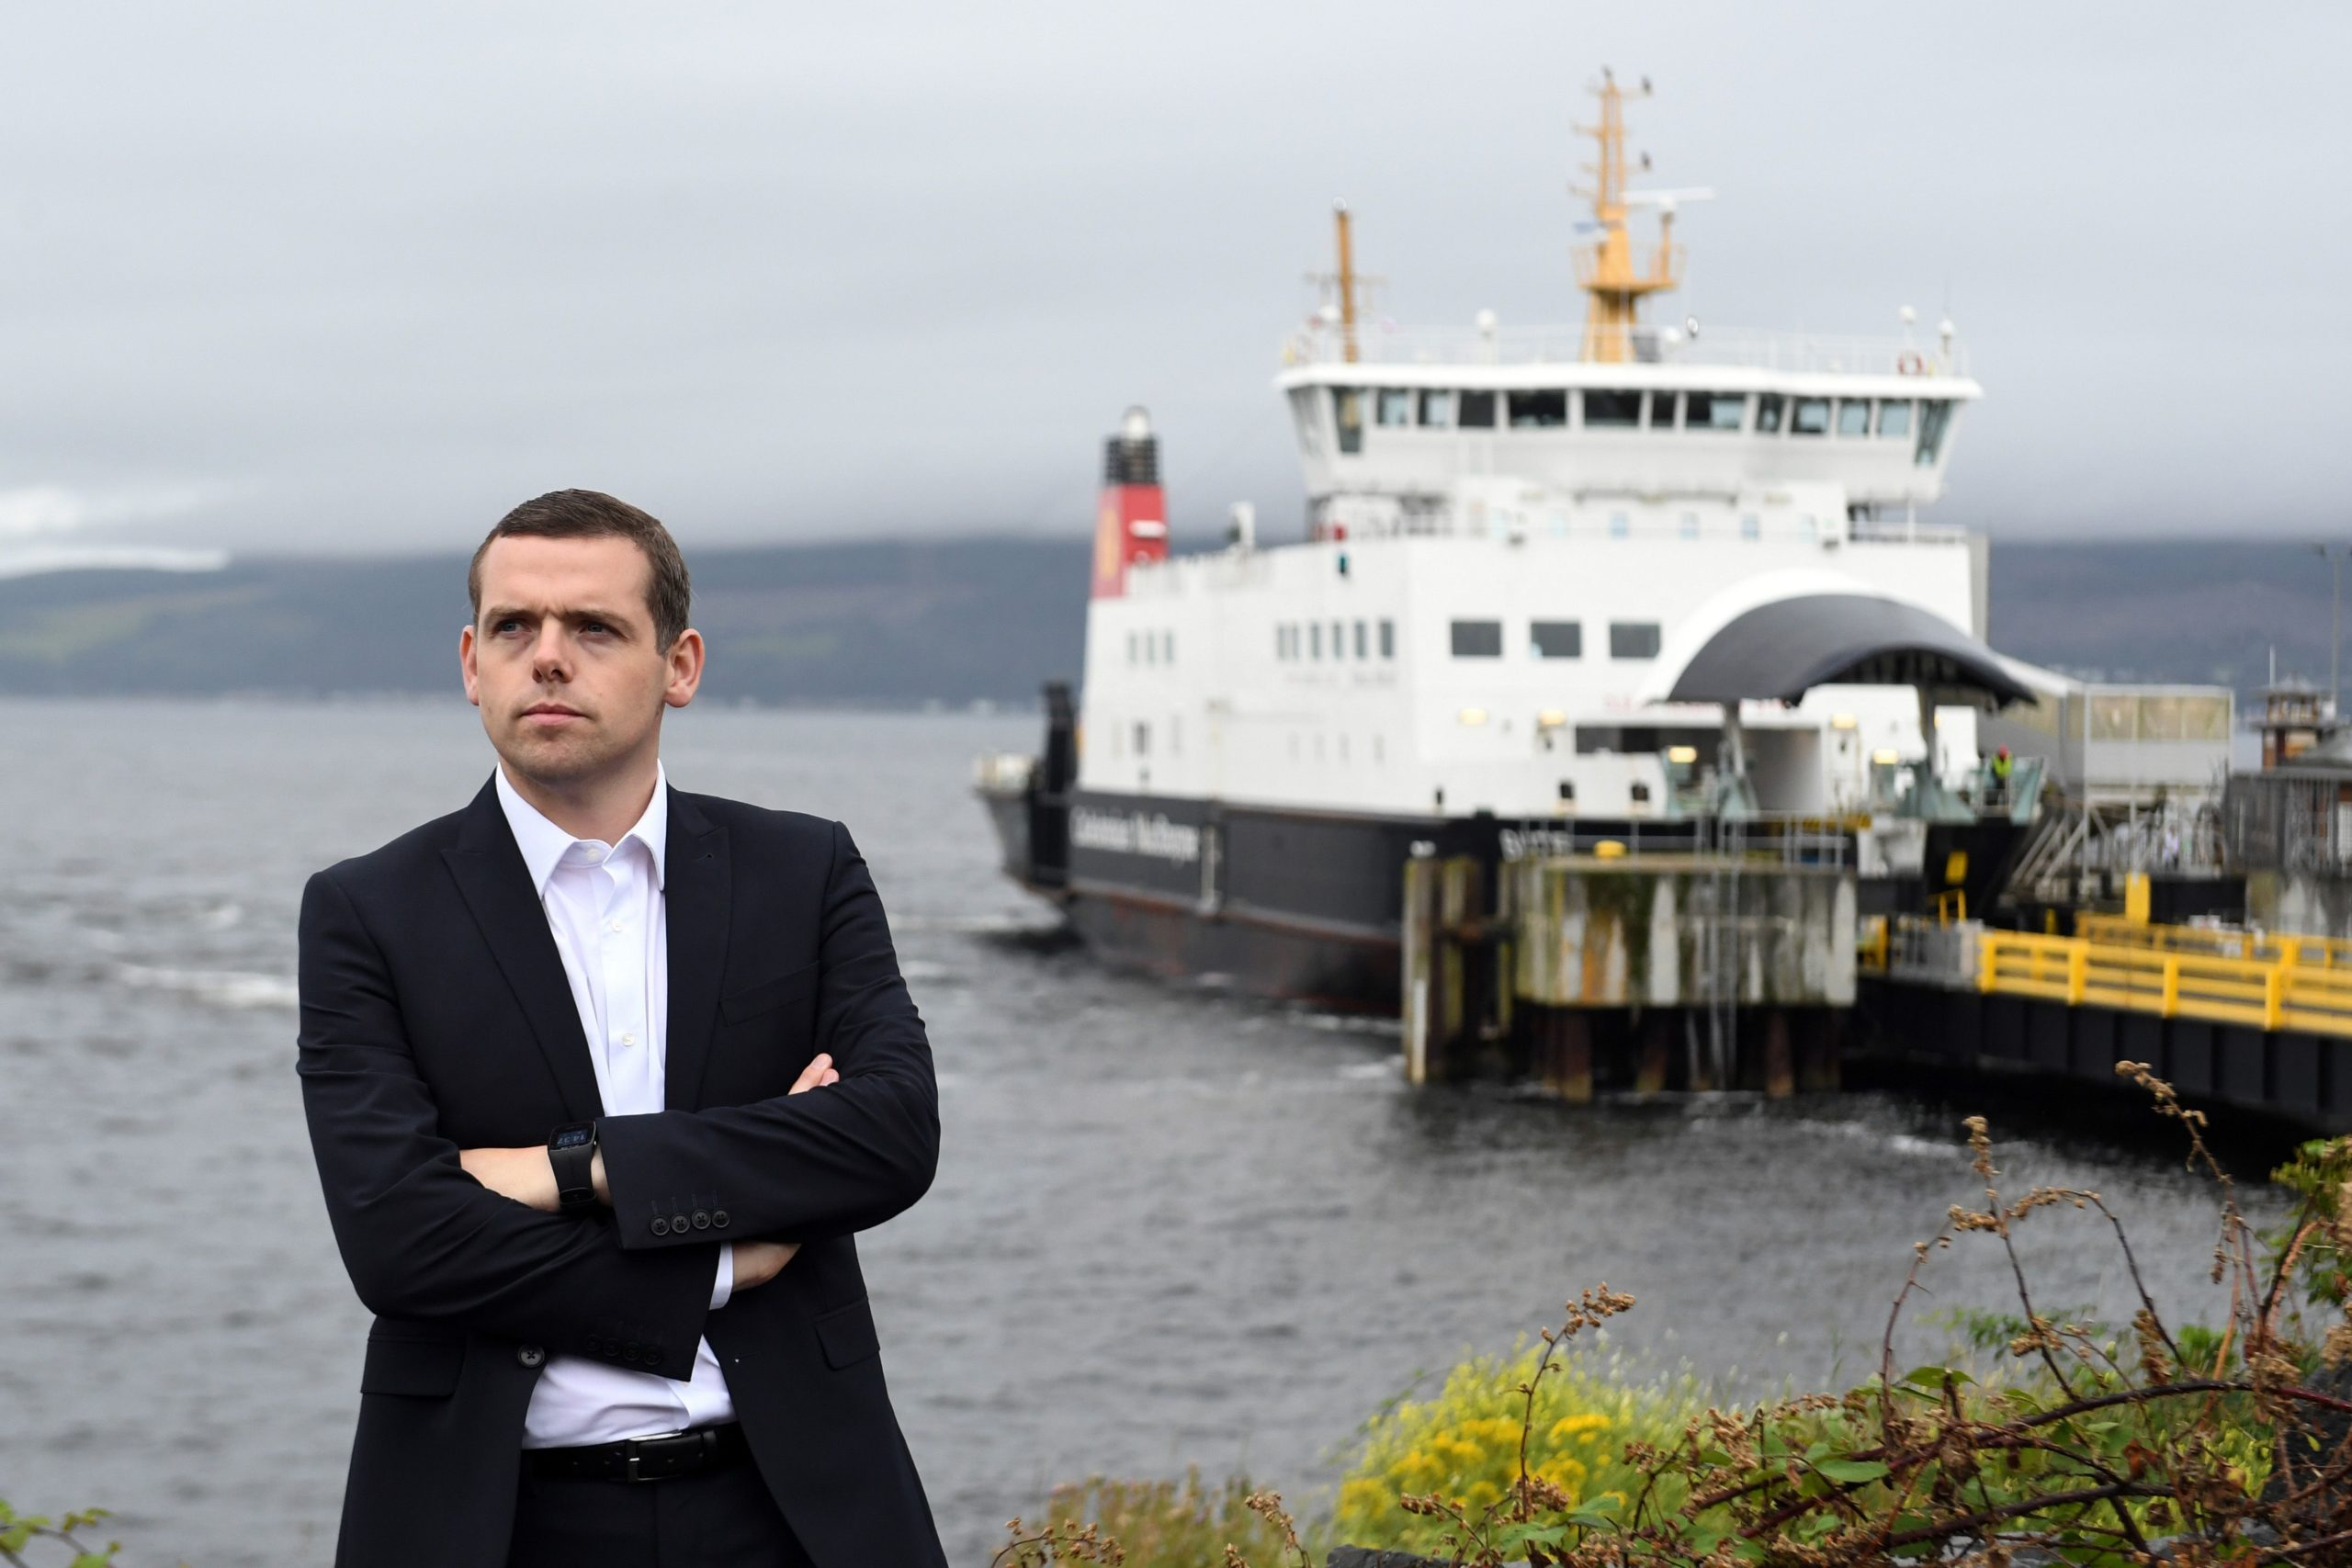 Douglas Ross, the new leader of the Scottish Conservative Party